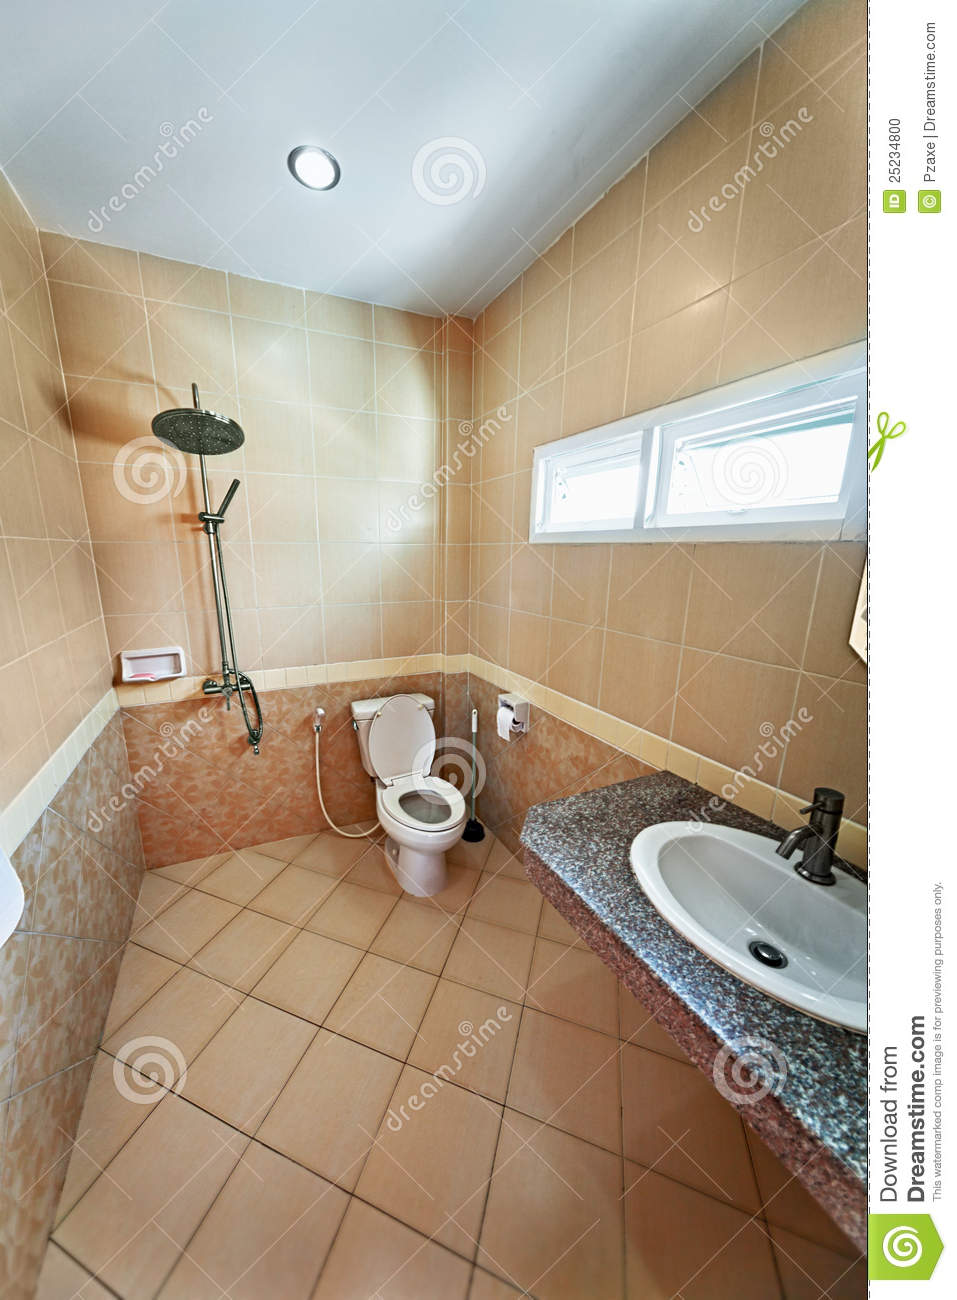 Iinterior of beige bathroom with shower stock photo for Salle de bain moderne 4m2